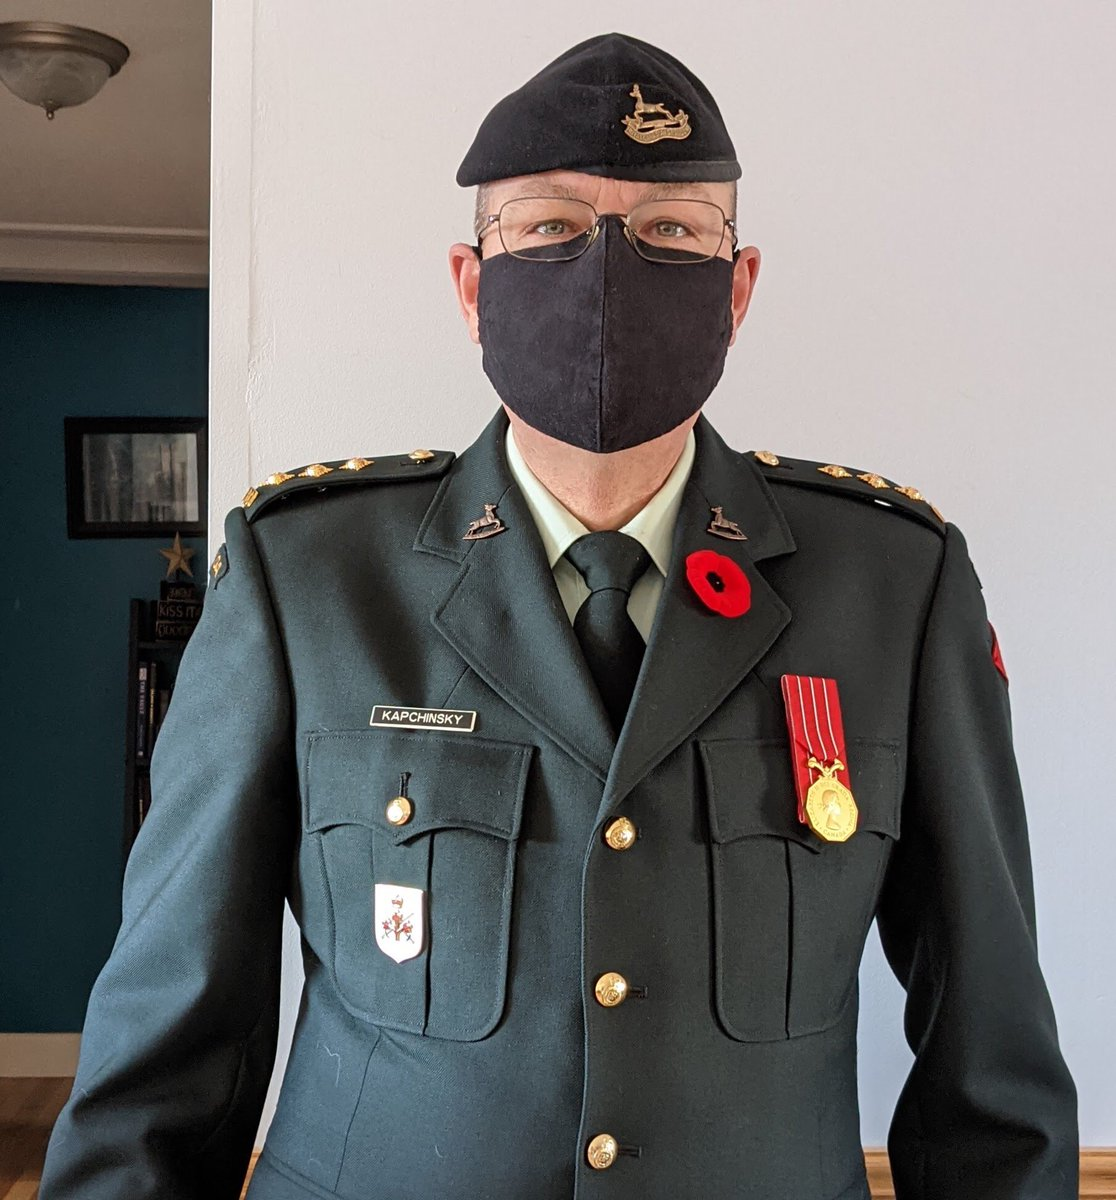 @thesawch @CanadianForces Many thanks. Wearing my dress mask😄